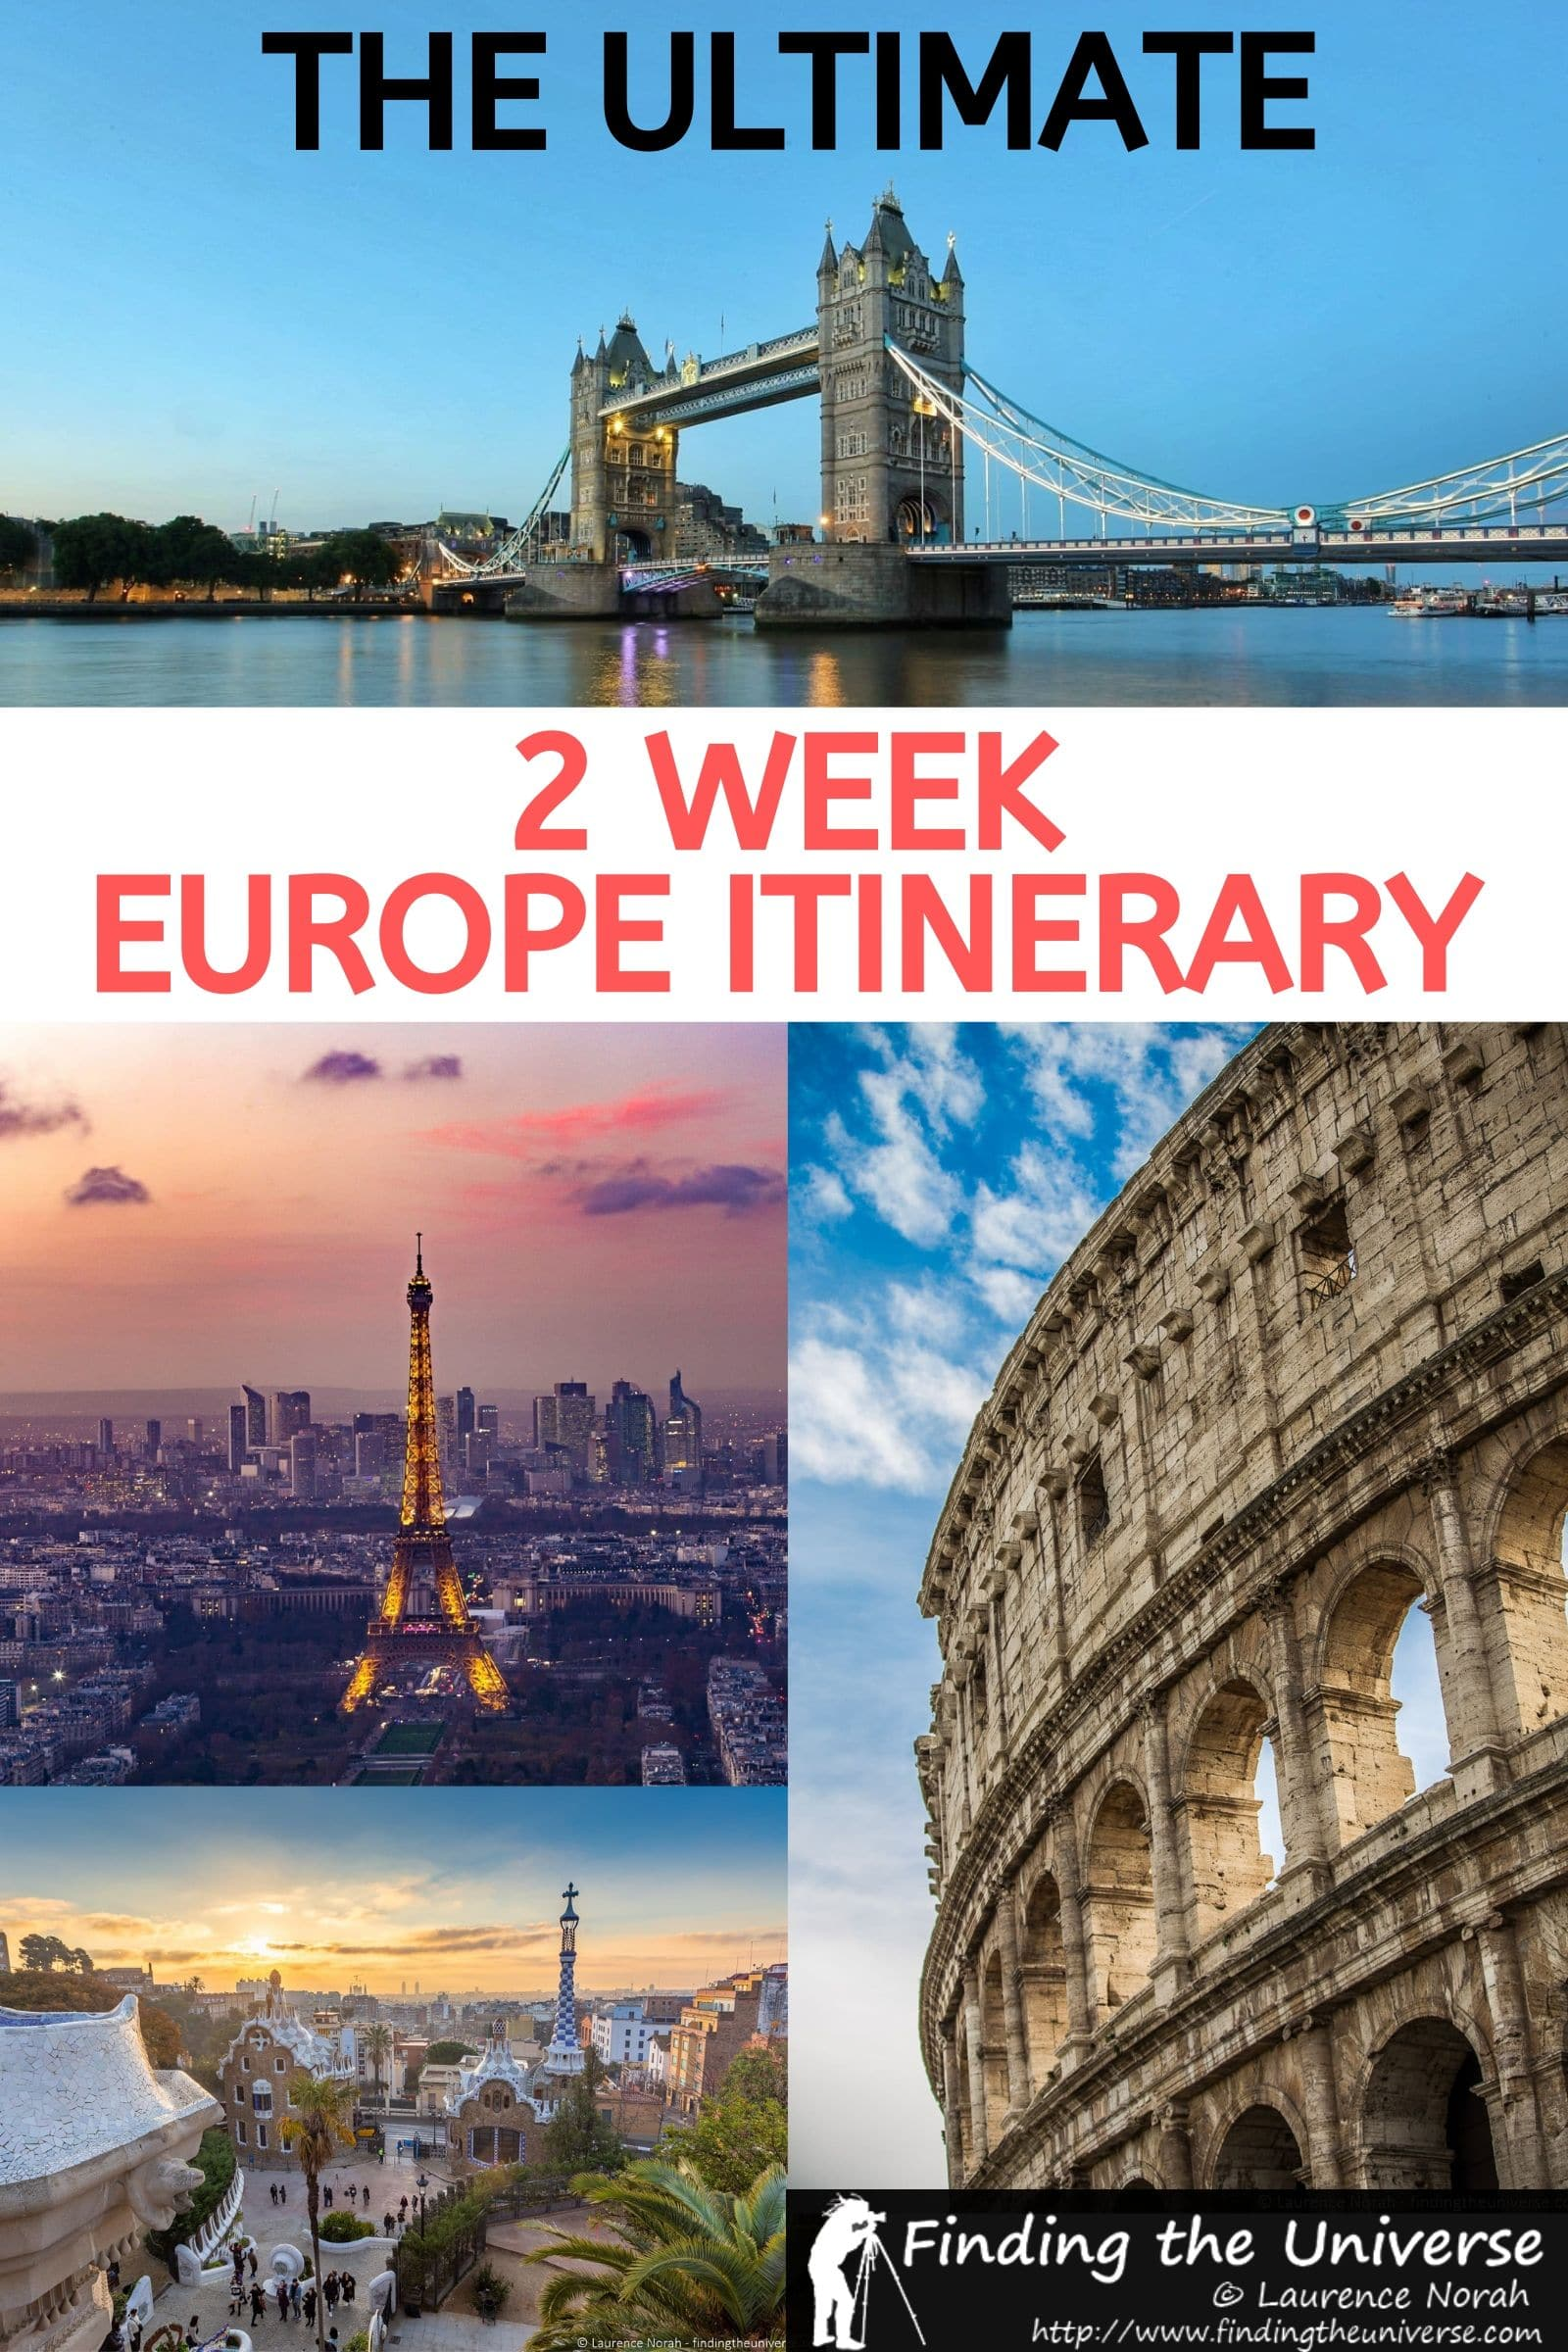 A detailed 2 week Europe itinerary, with things to do, tips for travel, accommodation and money saving